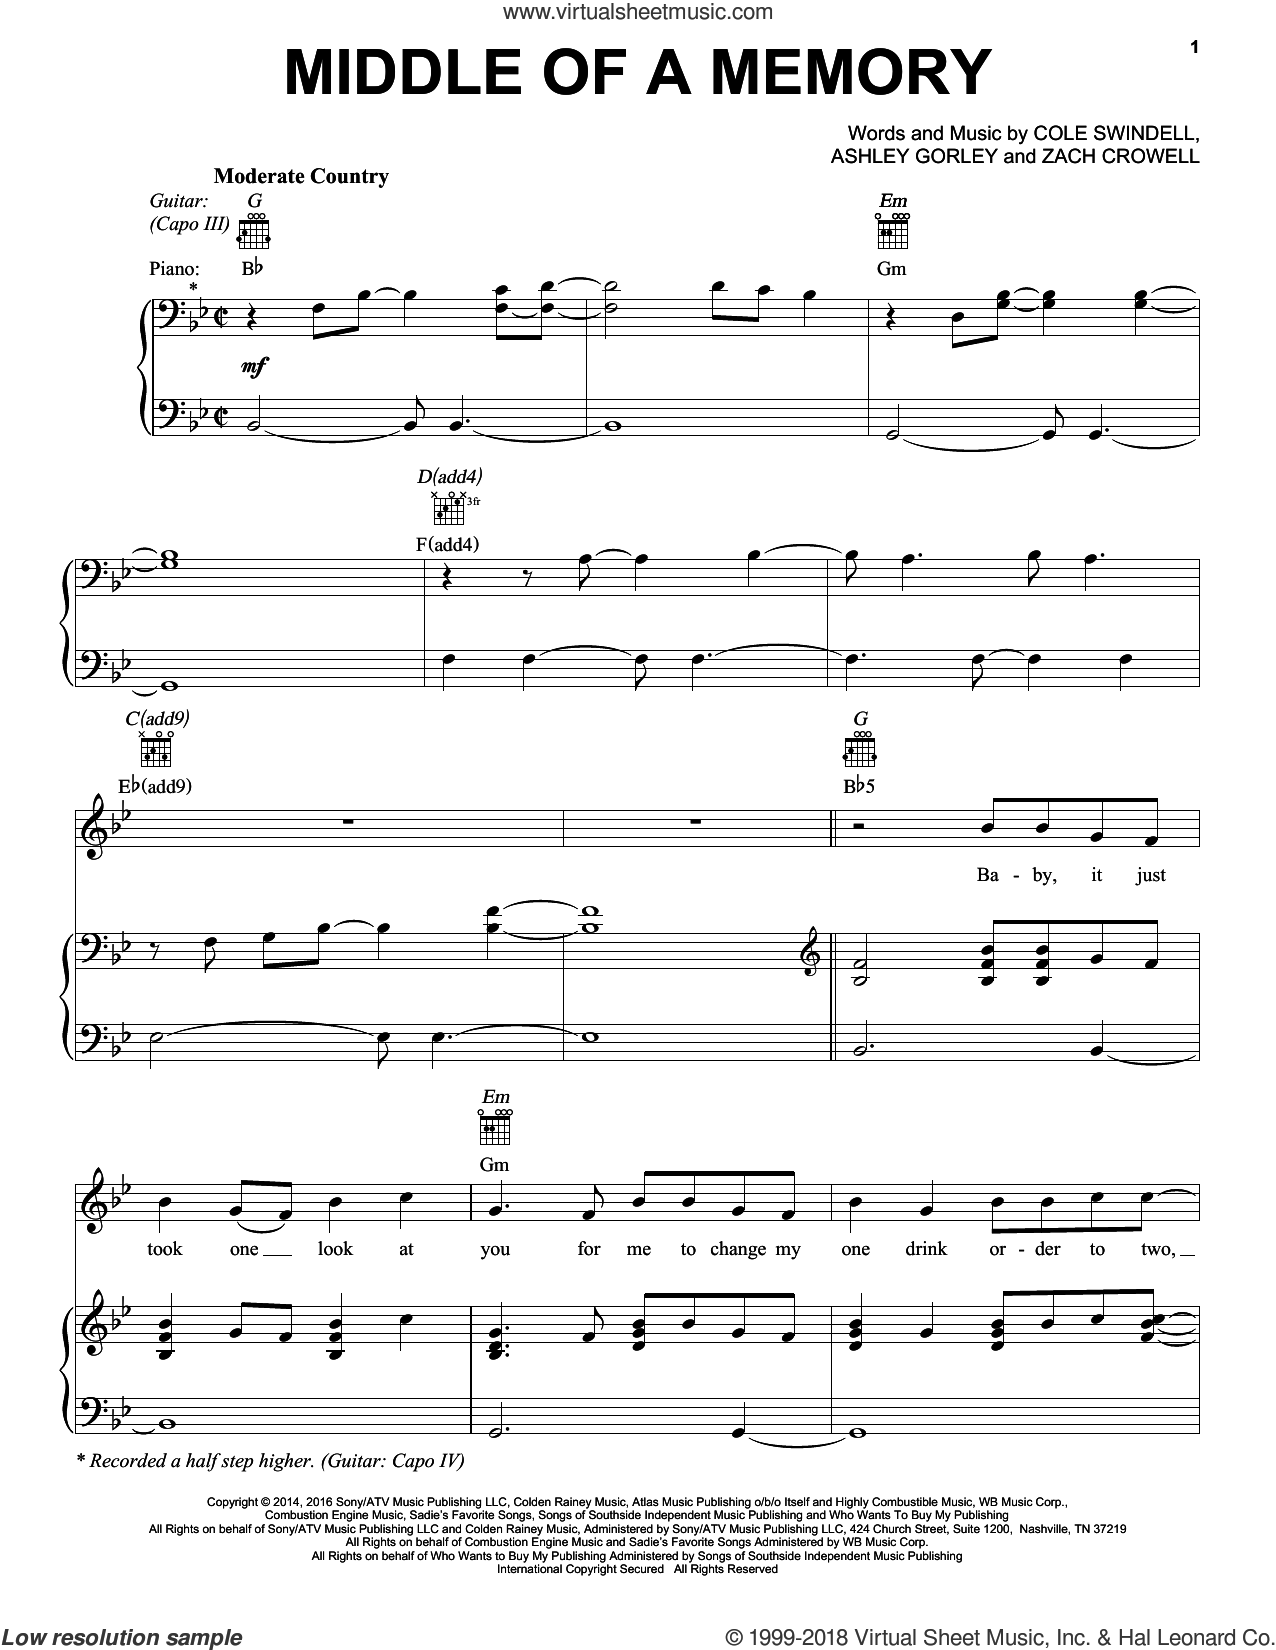 Middle Of A Memory sheet music for voice, piano or guitar by Zach Crowell, Ashley Gorley and Cole Swindell. Score Image Preview.